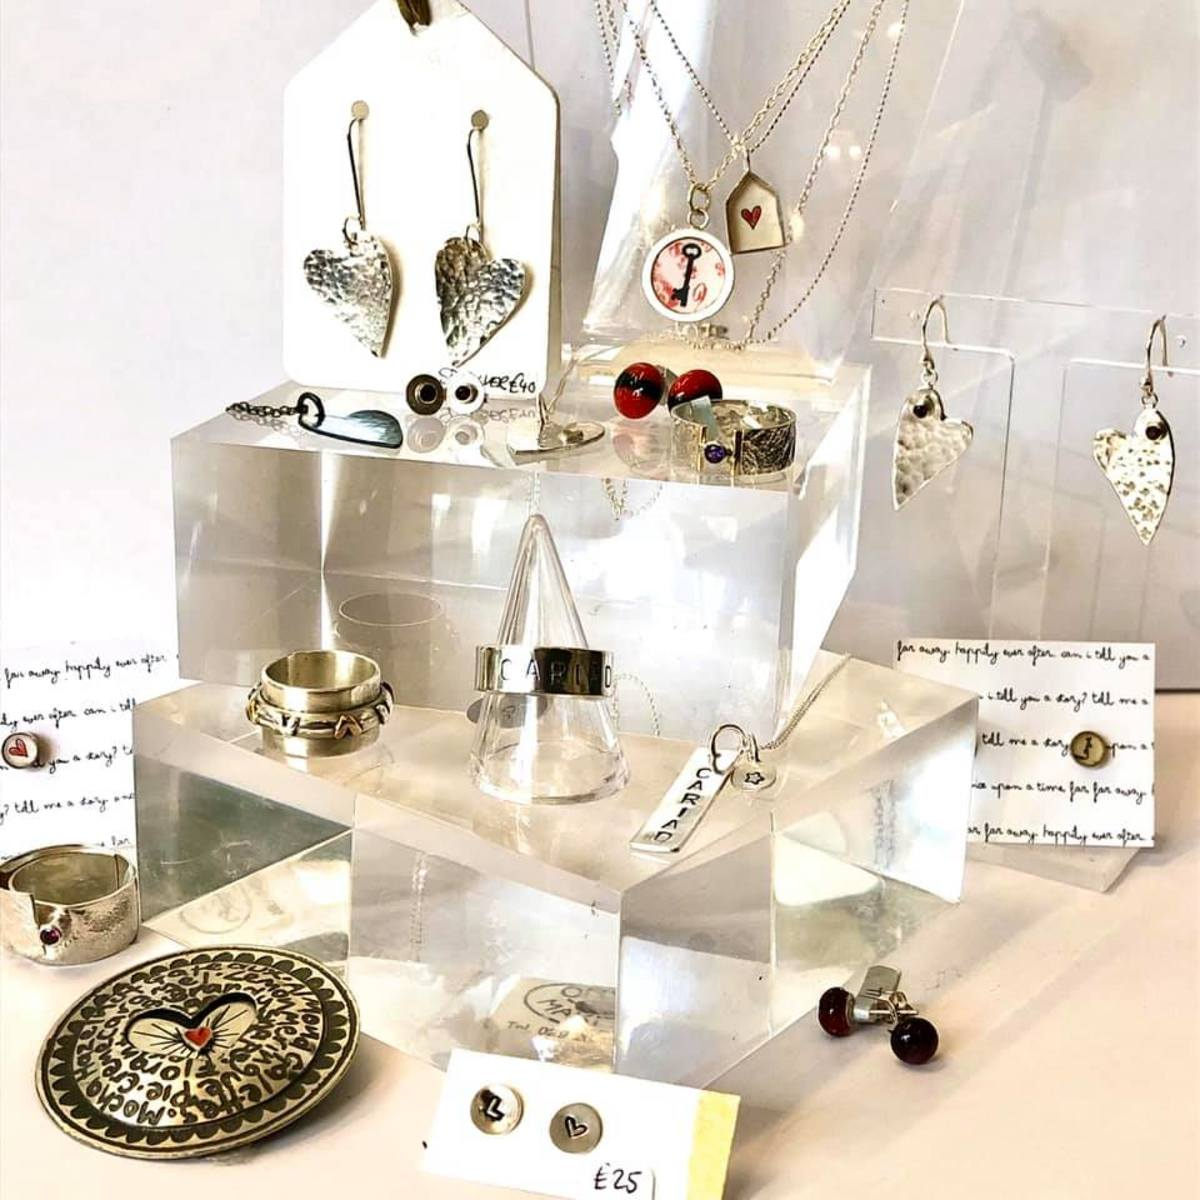 A selection of jewellery by gallery makers